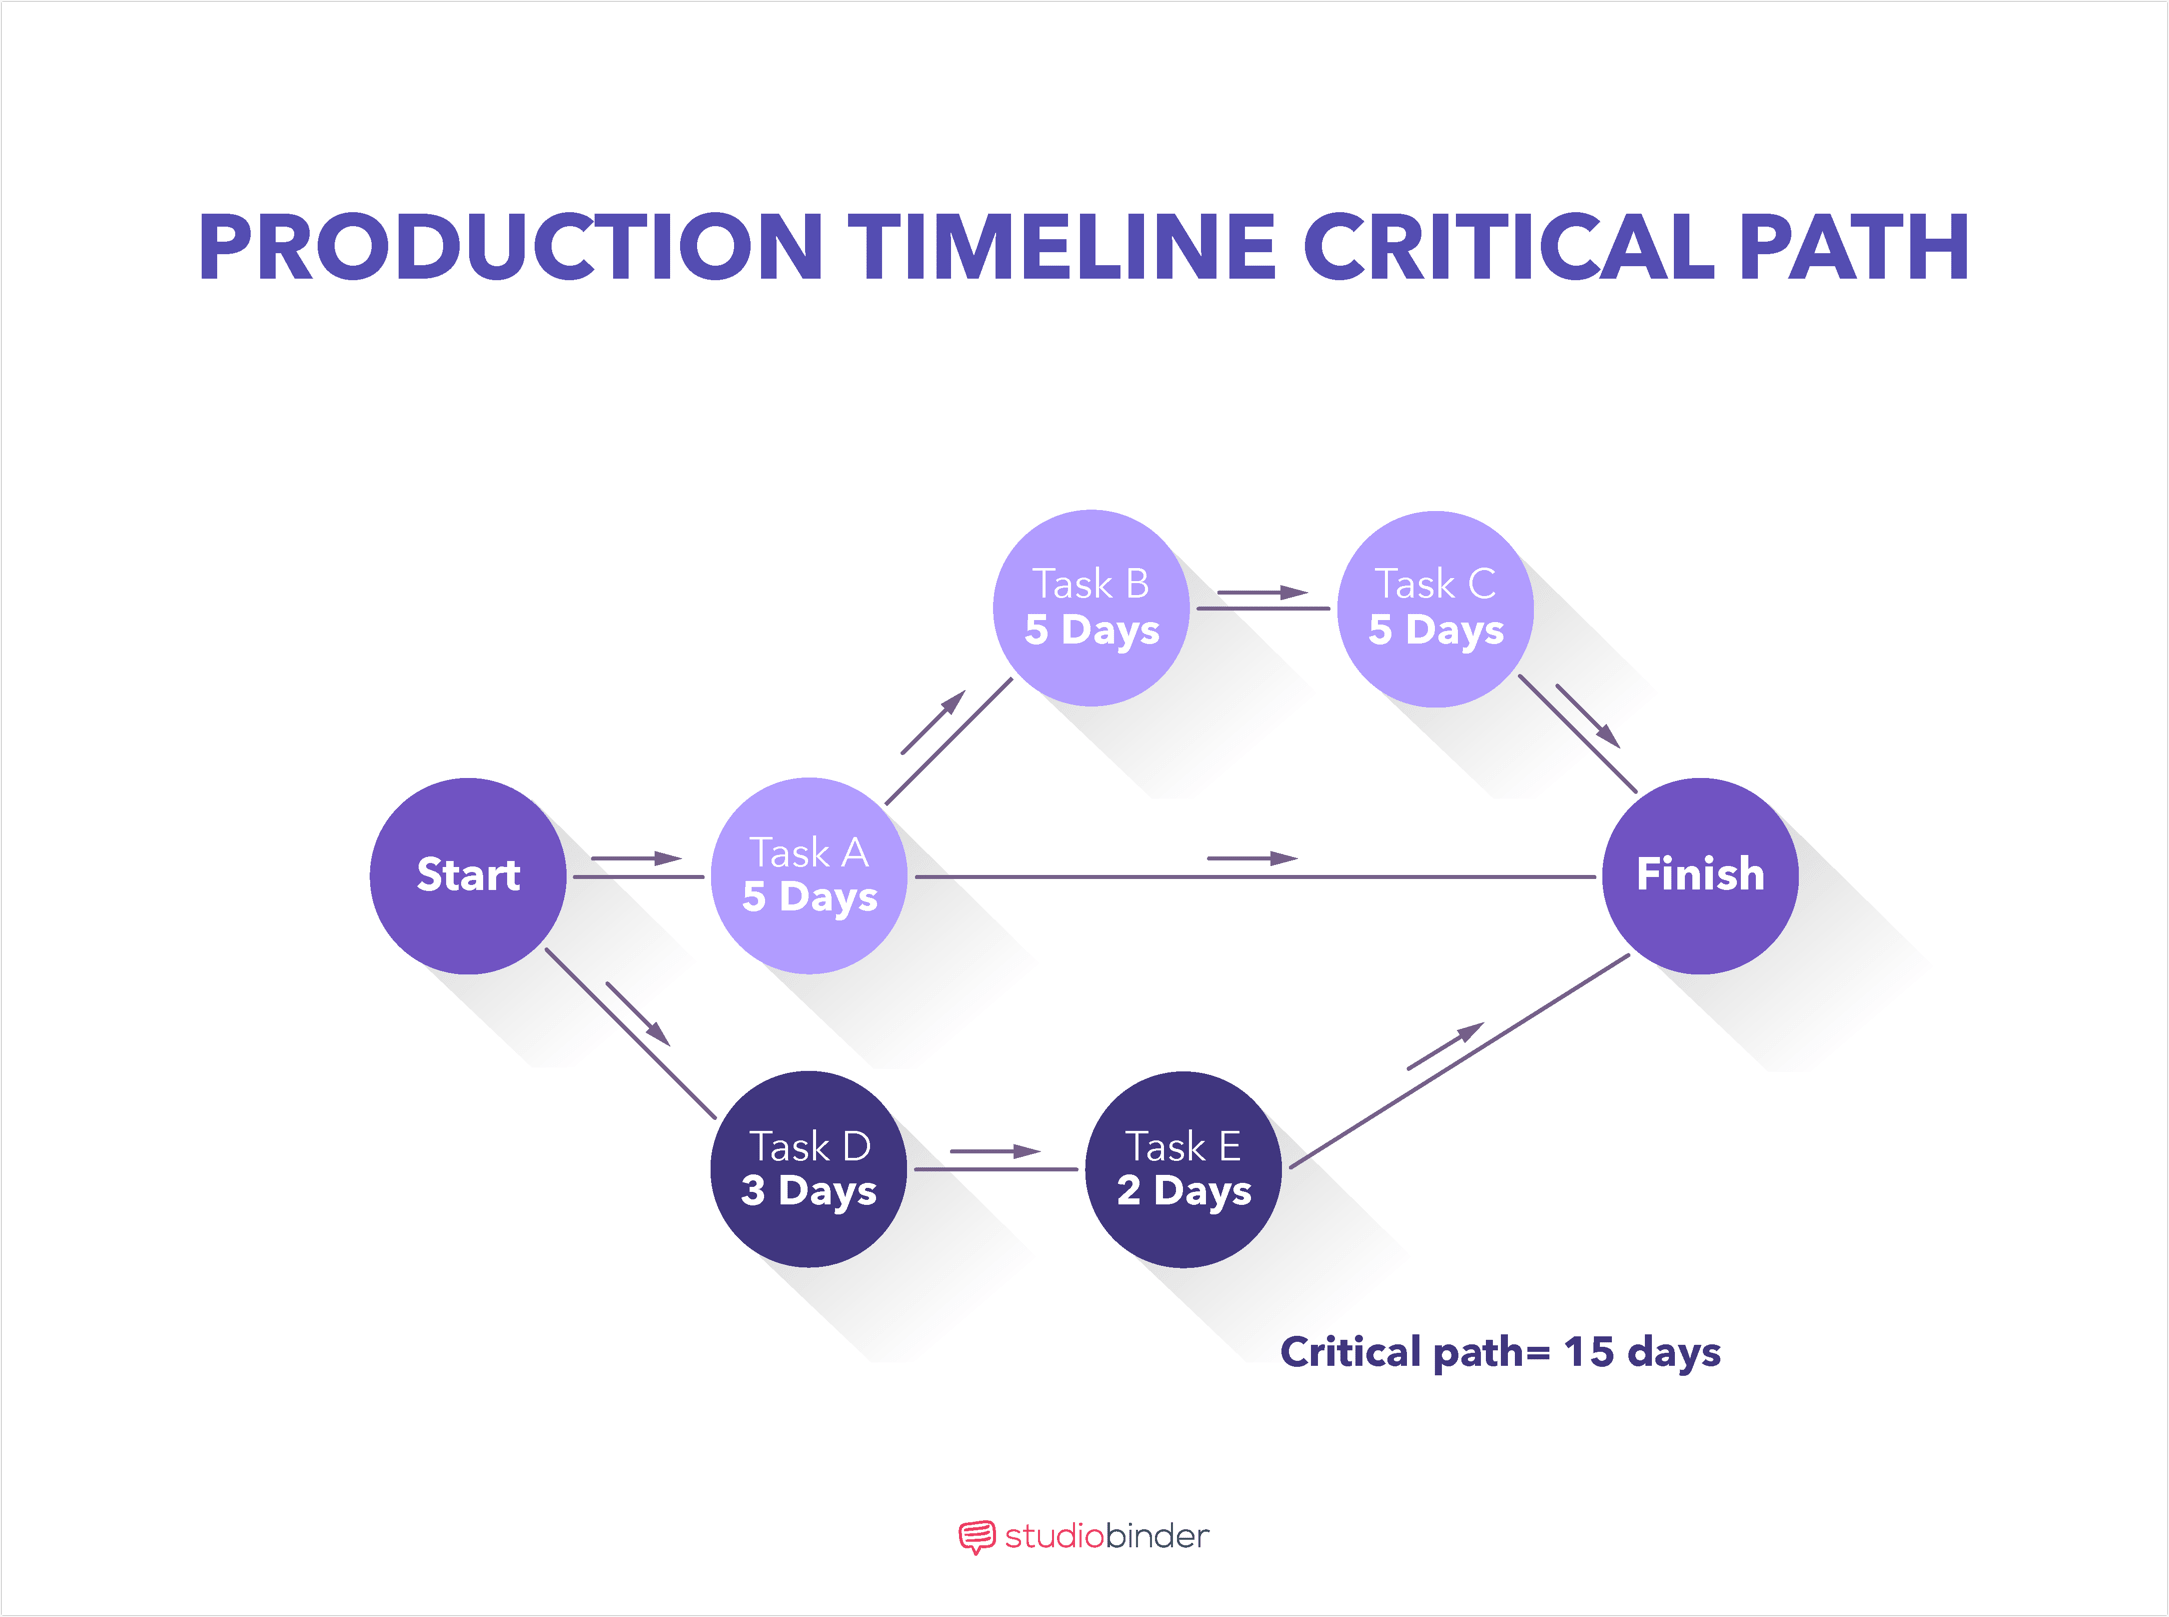 Film, Photo, & Video Production Timeline - The Critical Path - StudioBinder